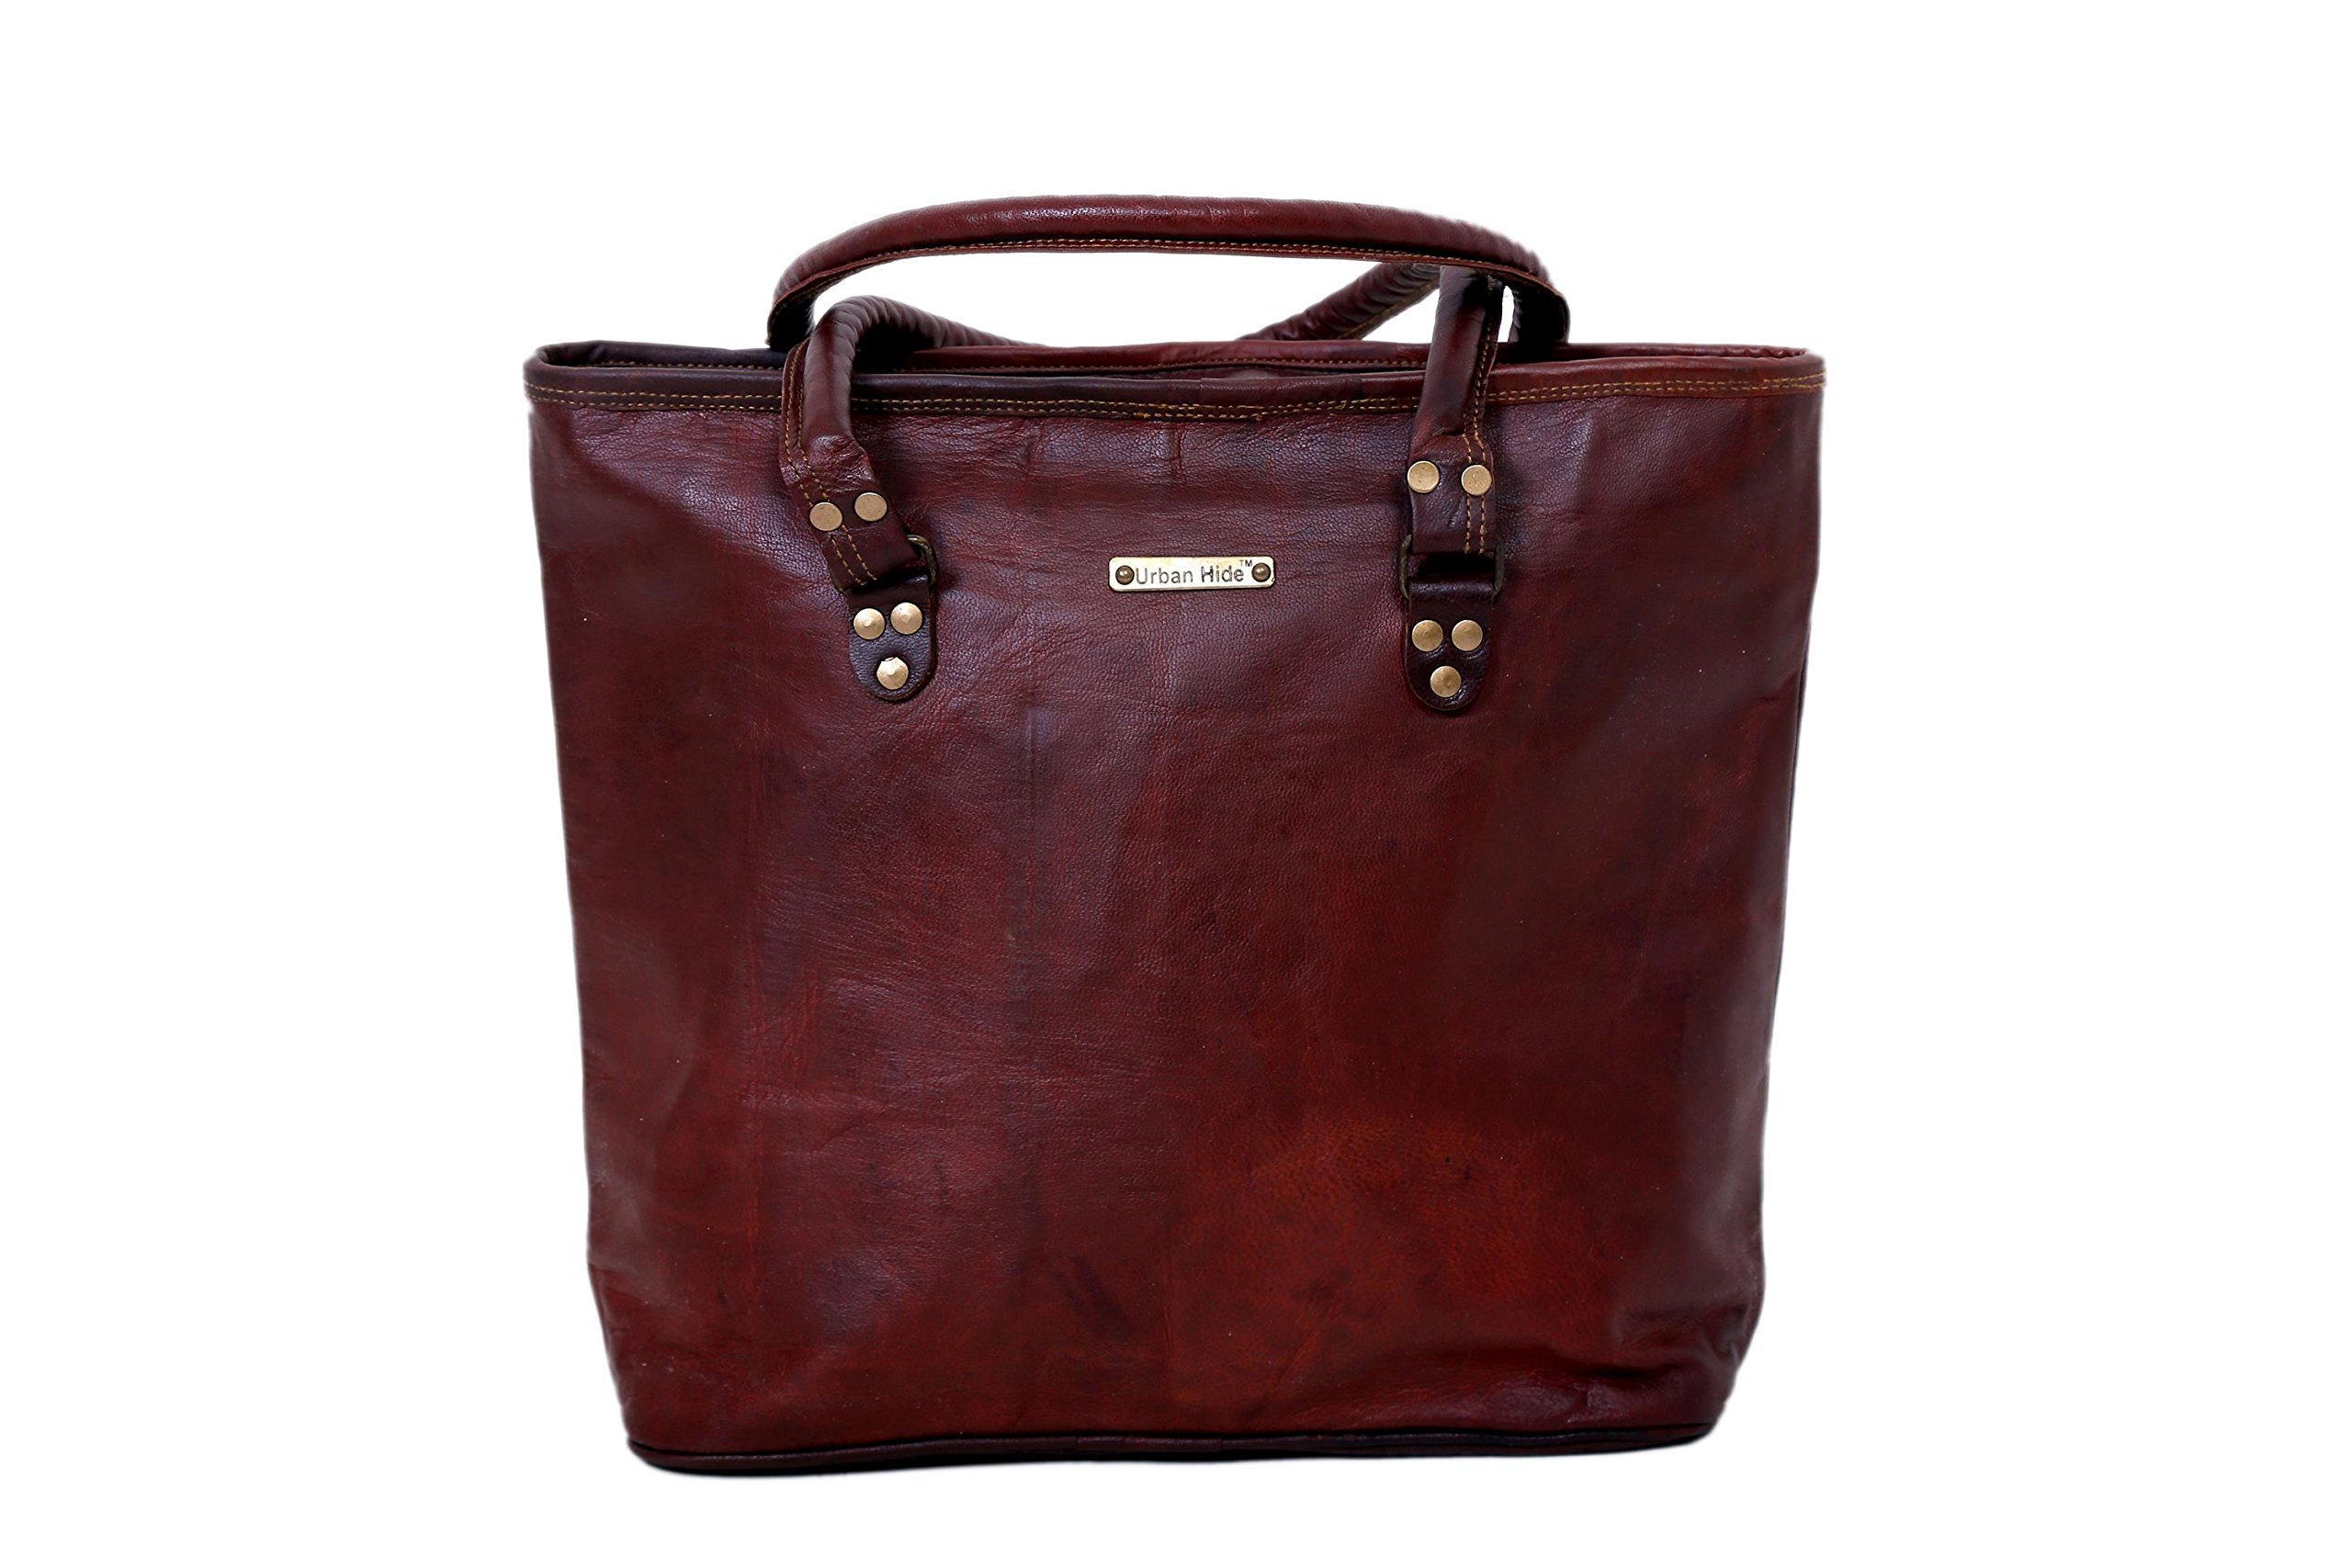 Handmade Genuine Leather Woman Tote Bag Large Ladies Carry All Bag Rustic Shopping Bag - handmade-bags